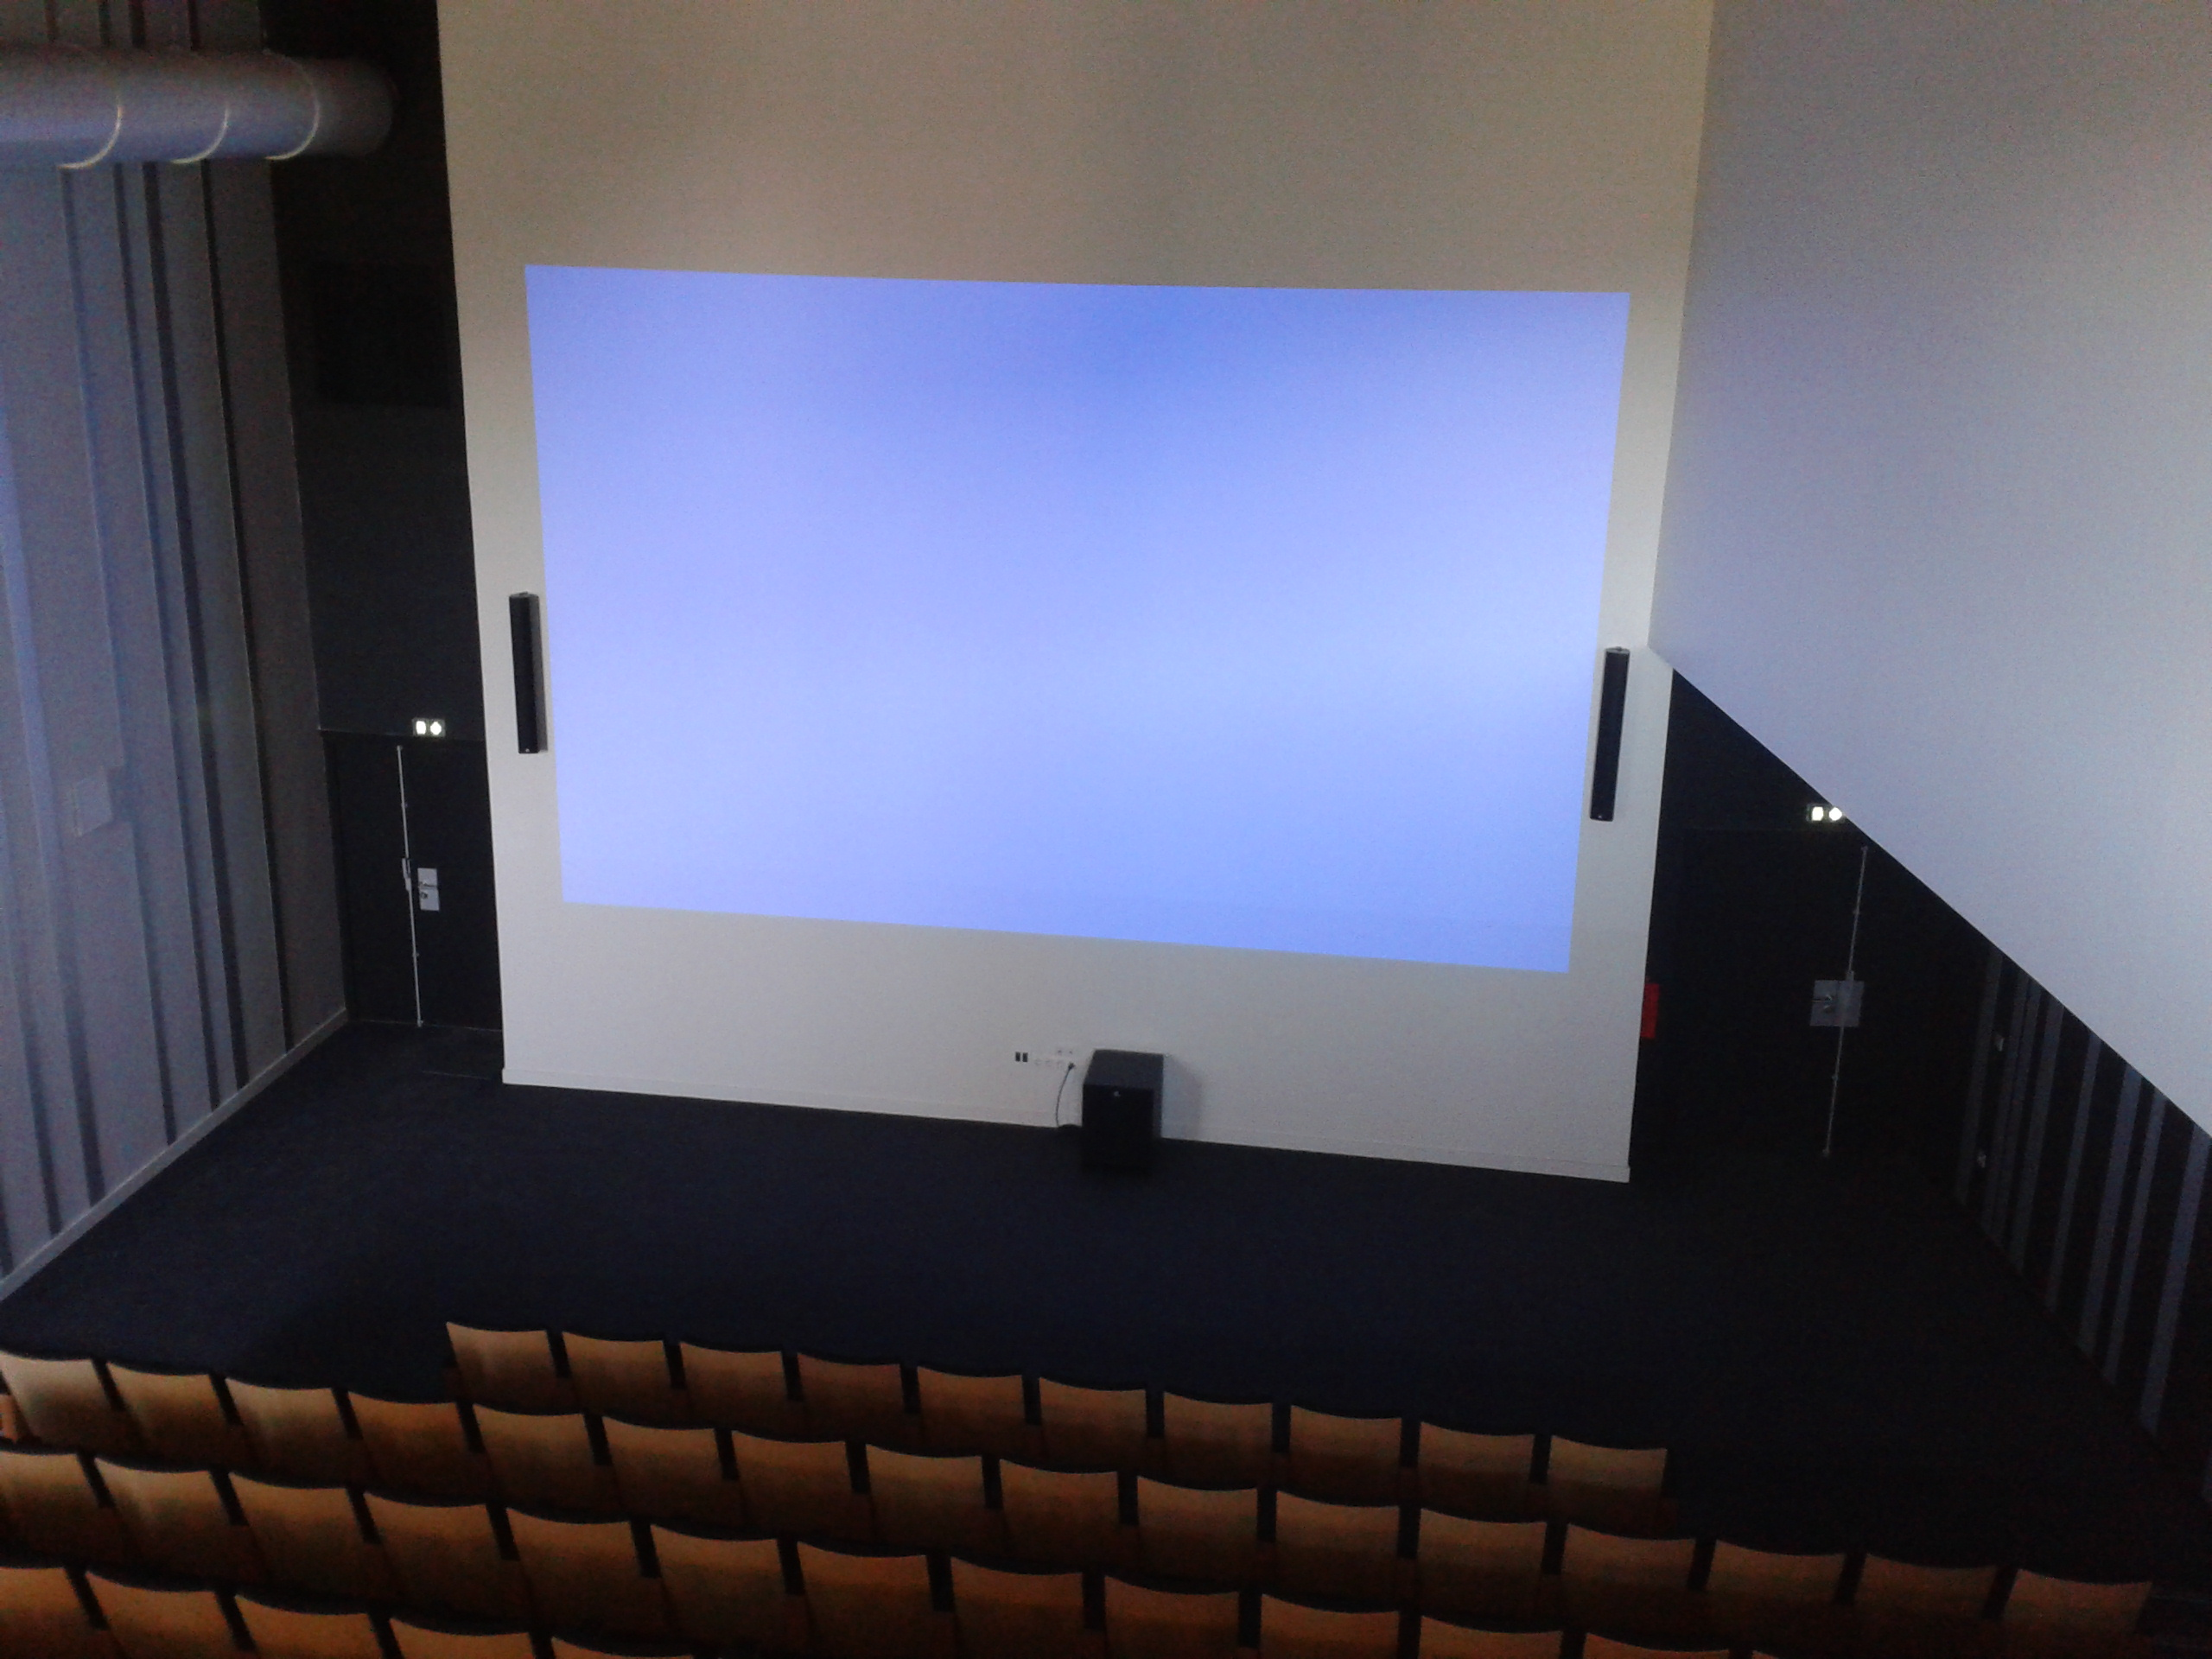 videoprojection_amphitheatre_arkeos.jpg